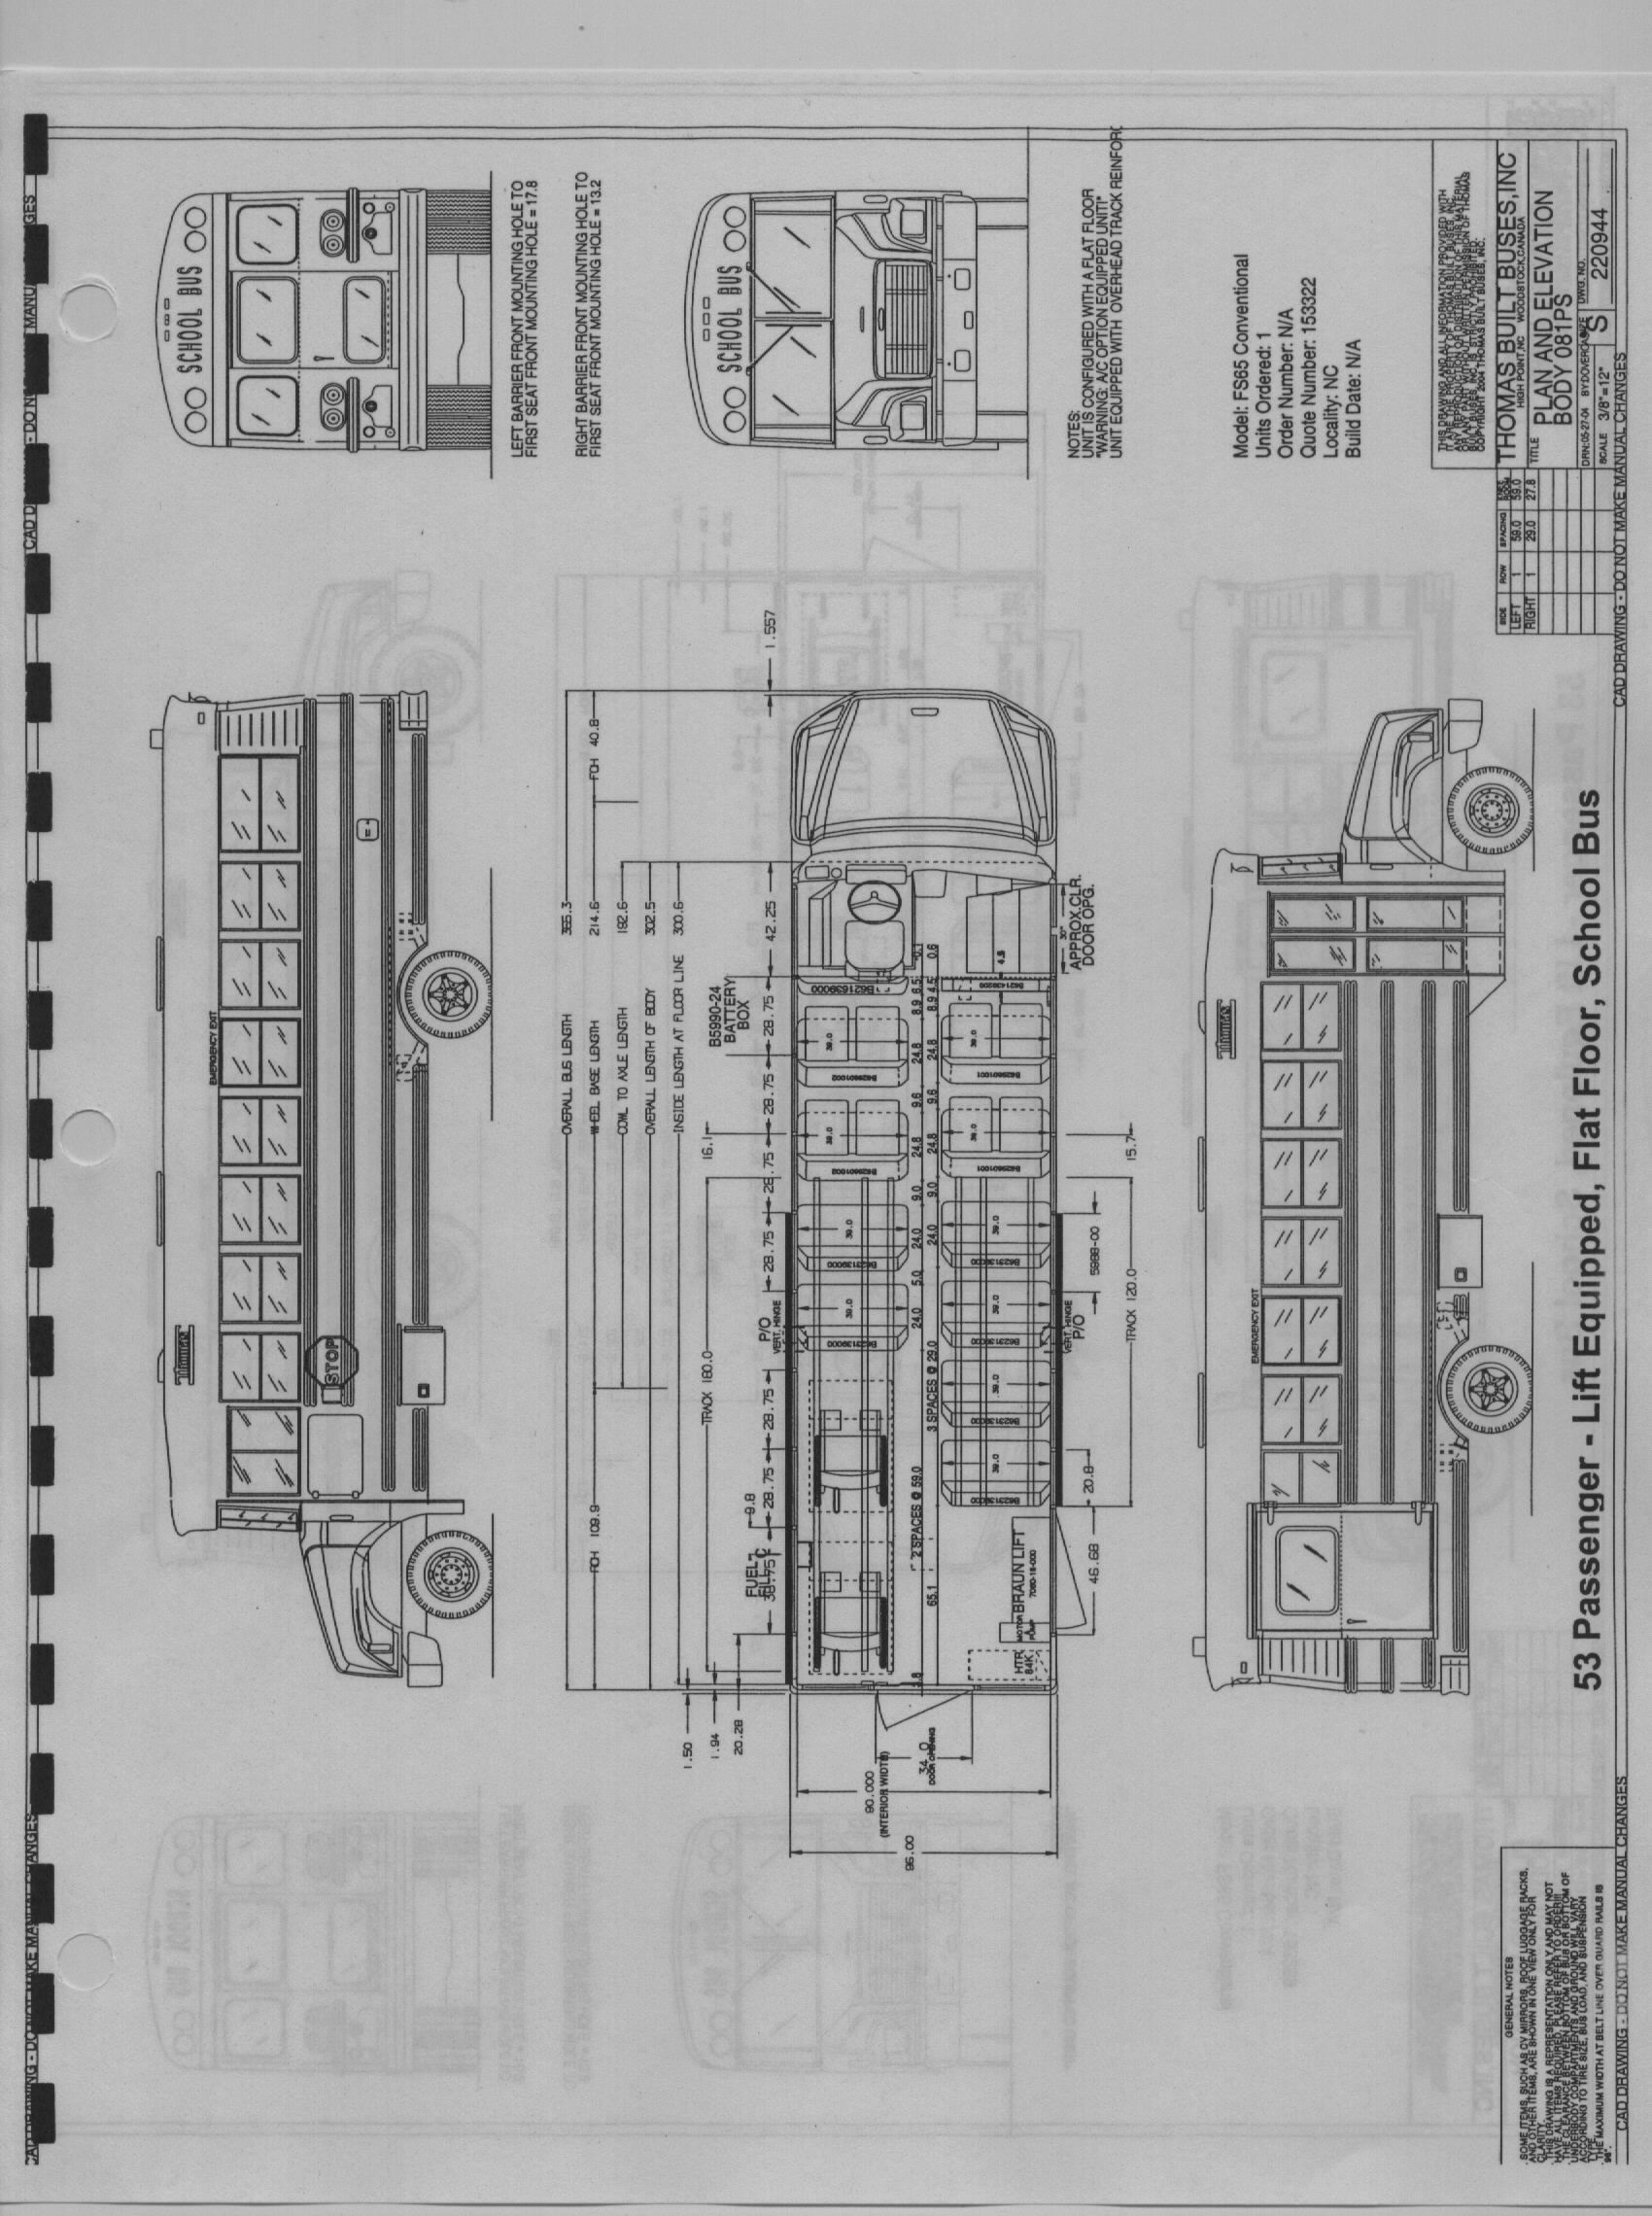 Holland Fifth Wheel Parts Diagram further Hydraulic Pilot Operated Valves further 2007 Freightliner Electrical Wiring Diagrams likewise 878026 Look What I Found Under Carpet as well HD9p 6117. on freightliner air system schematic